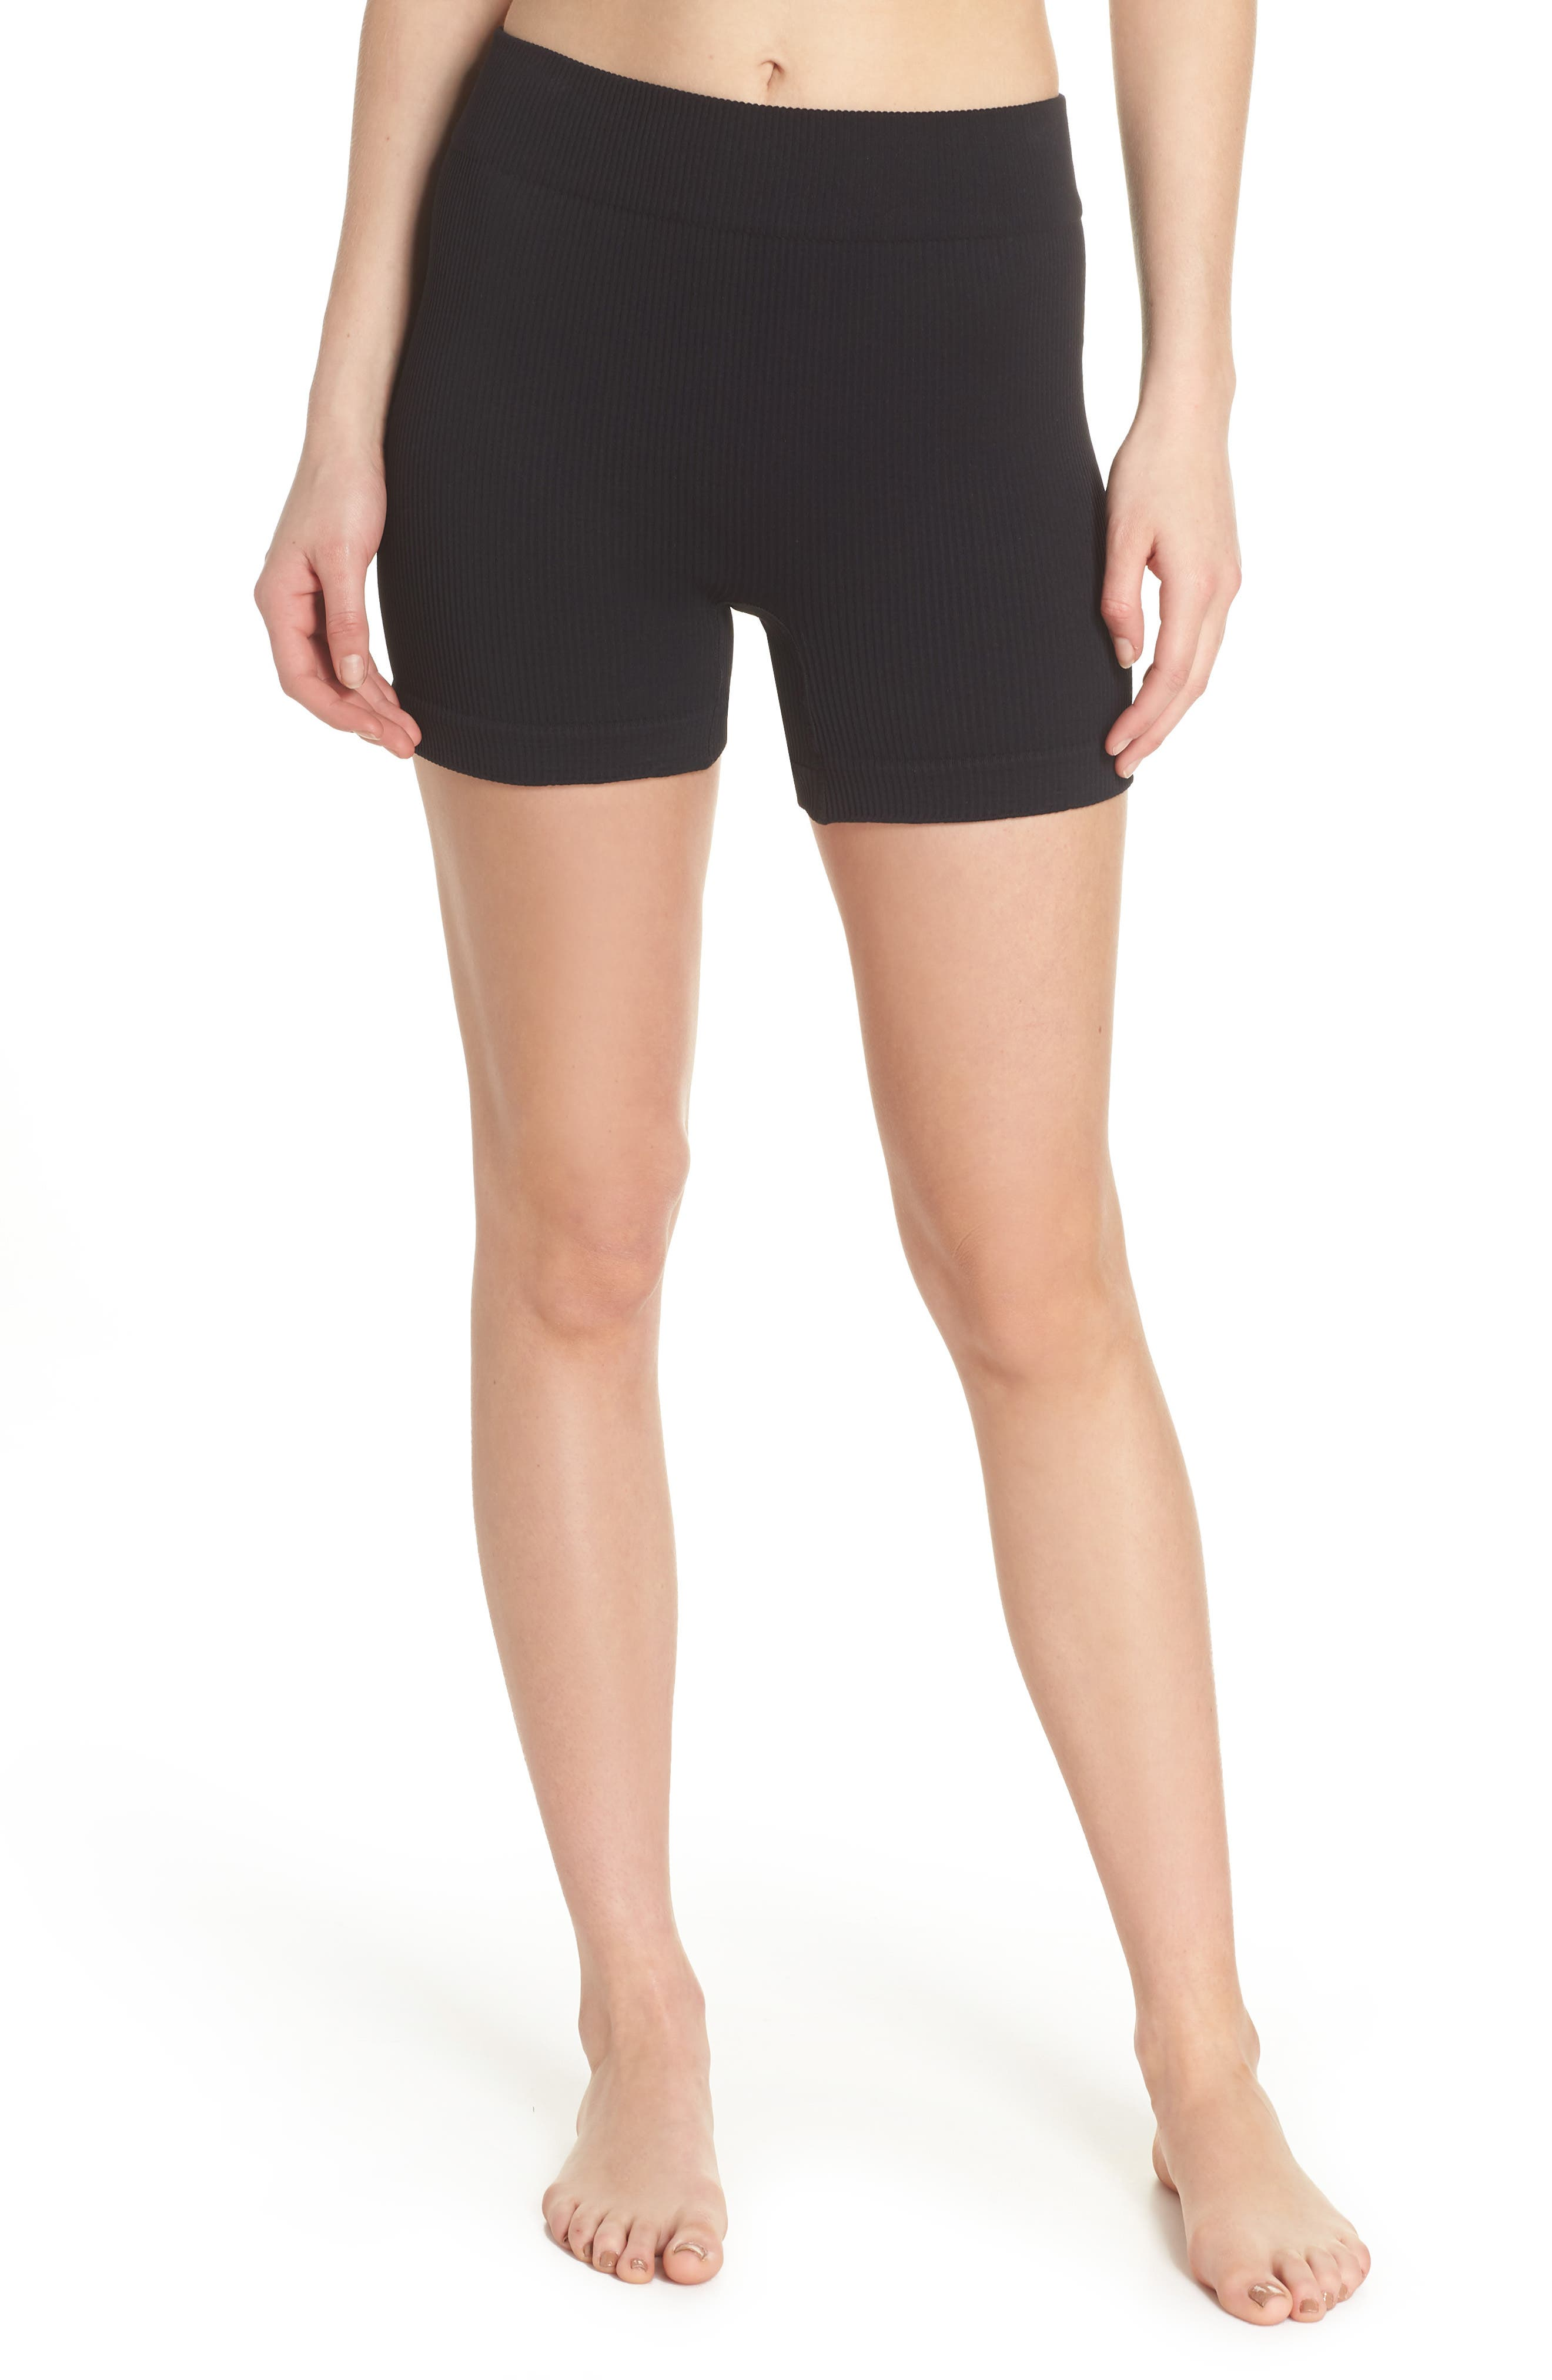 FREE PEOPLE MOVEMENT Seamless Shorts, Main, color, BLACK